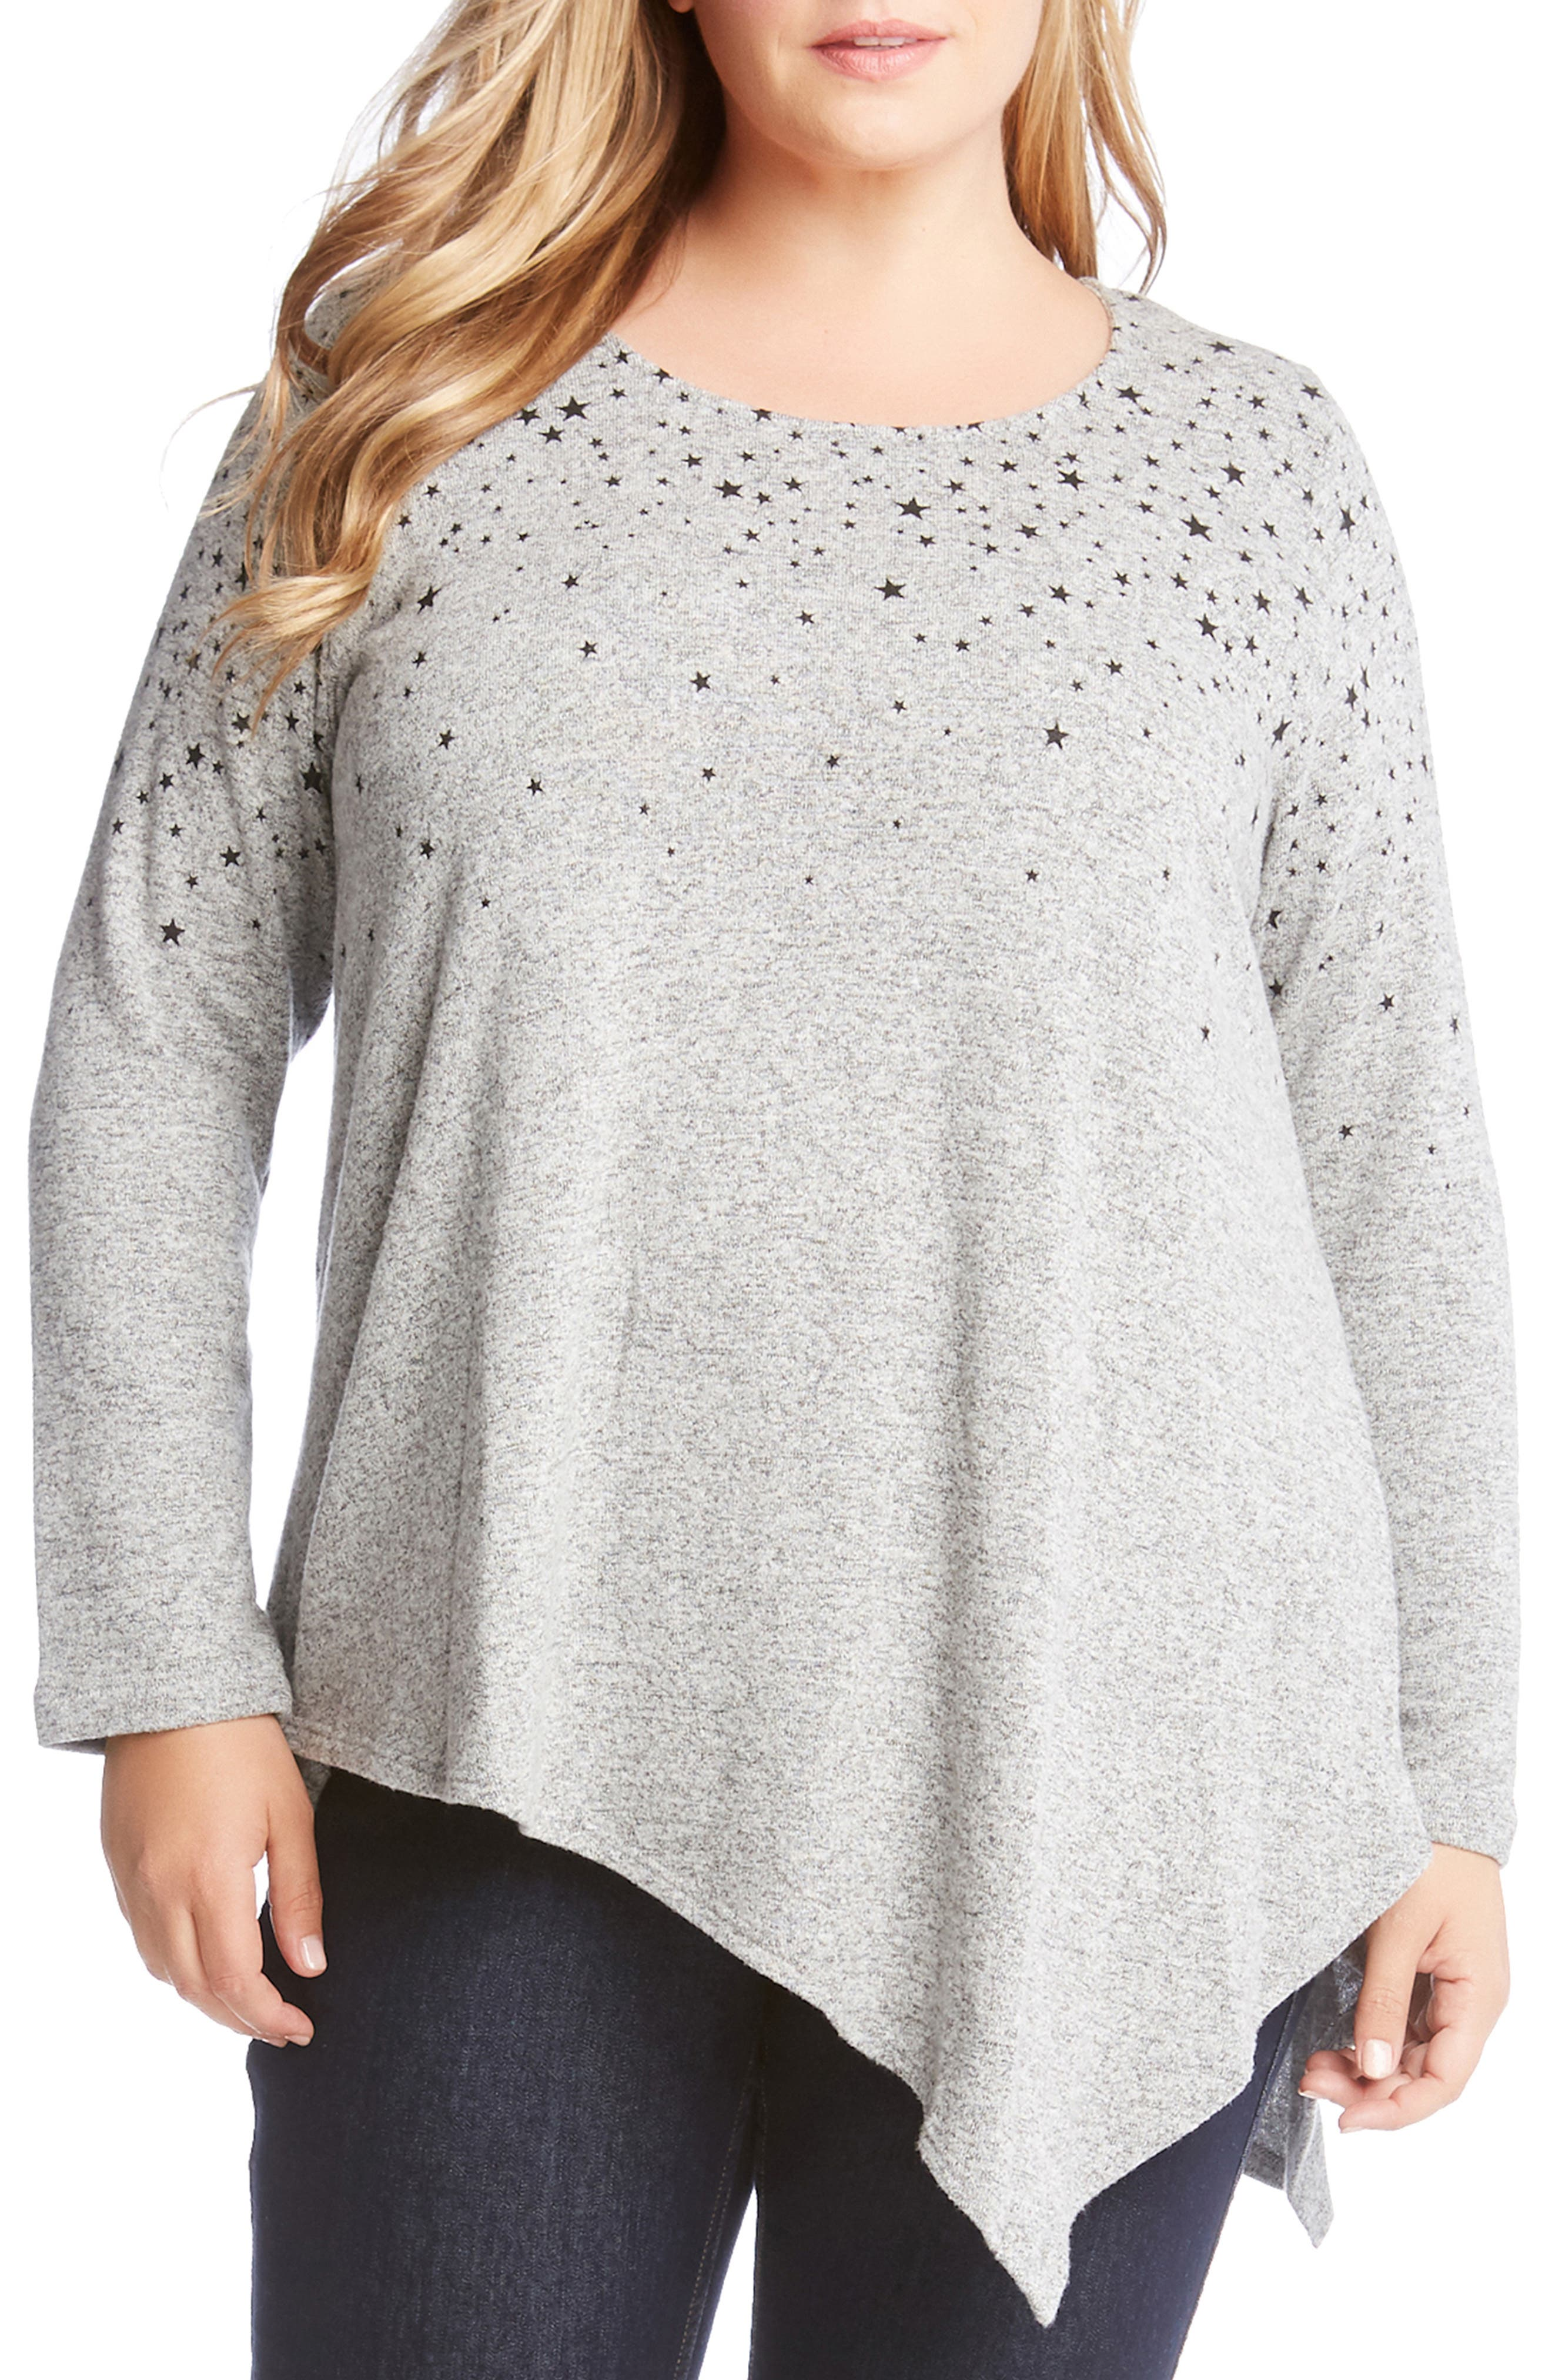 KAREN KANE Asymmetrical Star Print Sweater, Main, color, 020